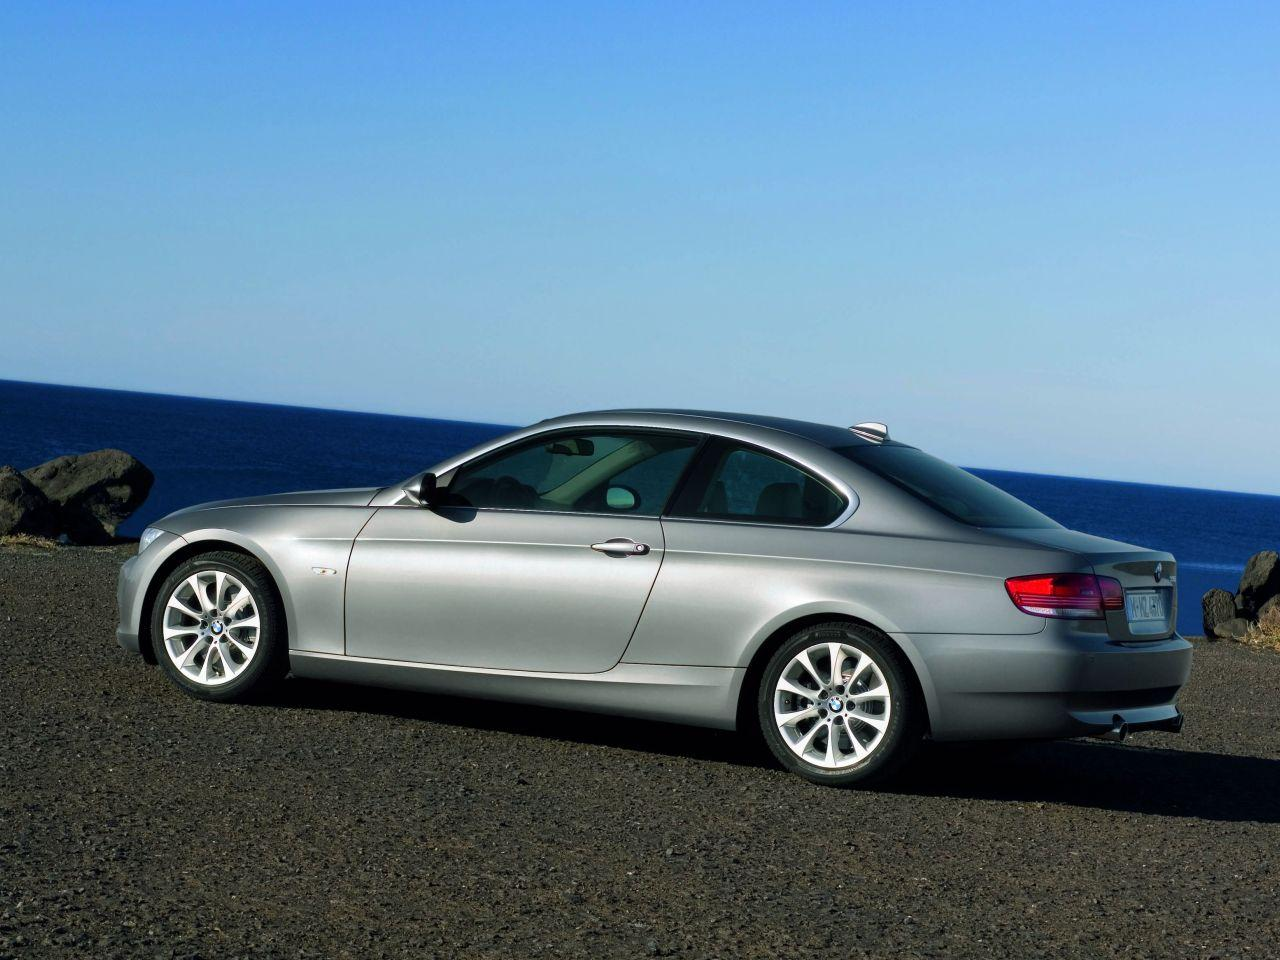 2013 bmw 328 specs and prices autoblog - 2013 bmw 335i coupe specs ...